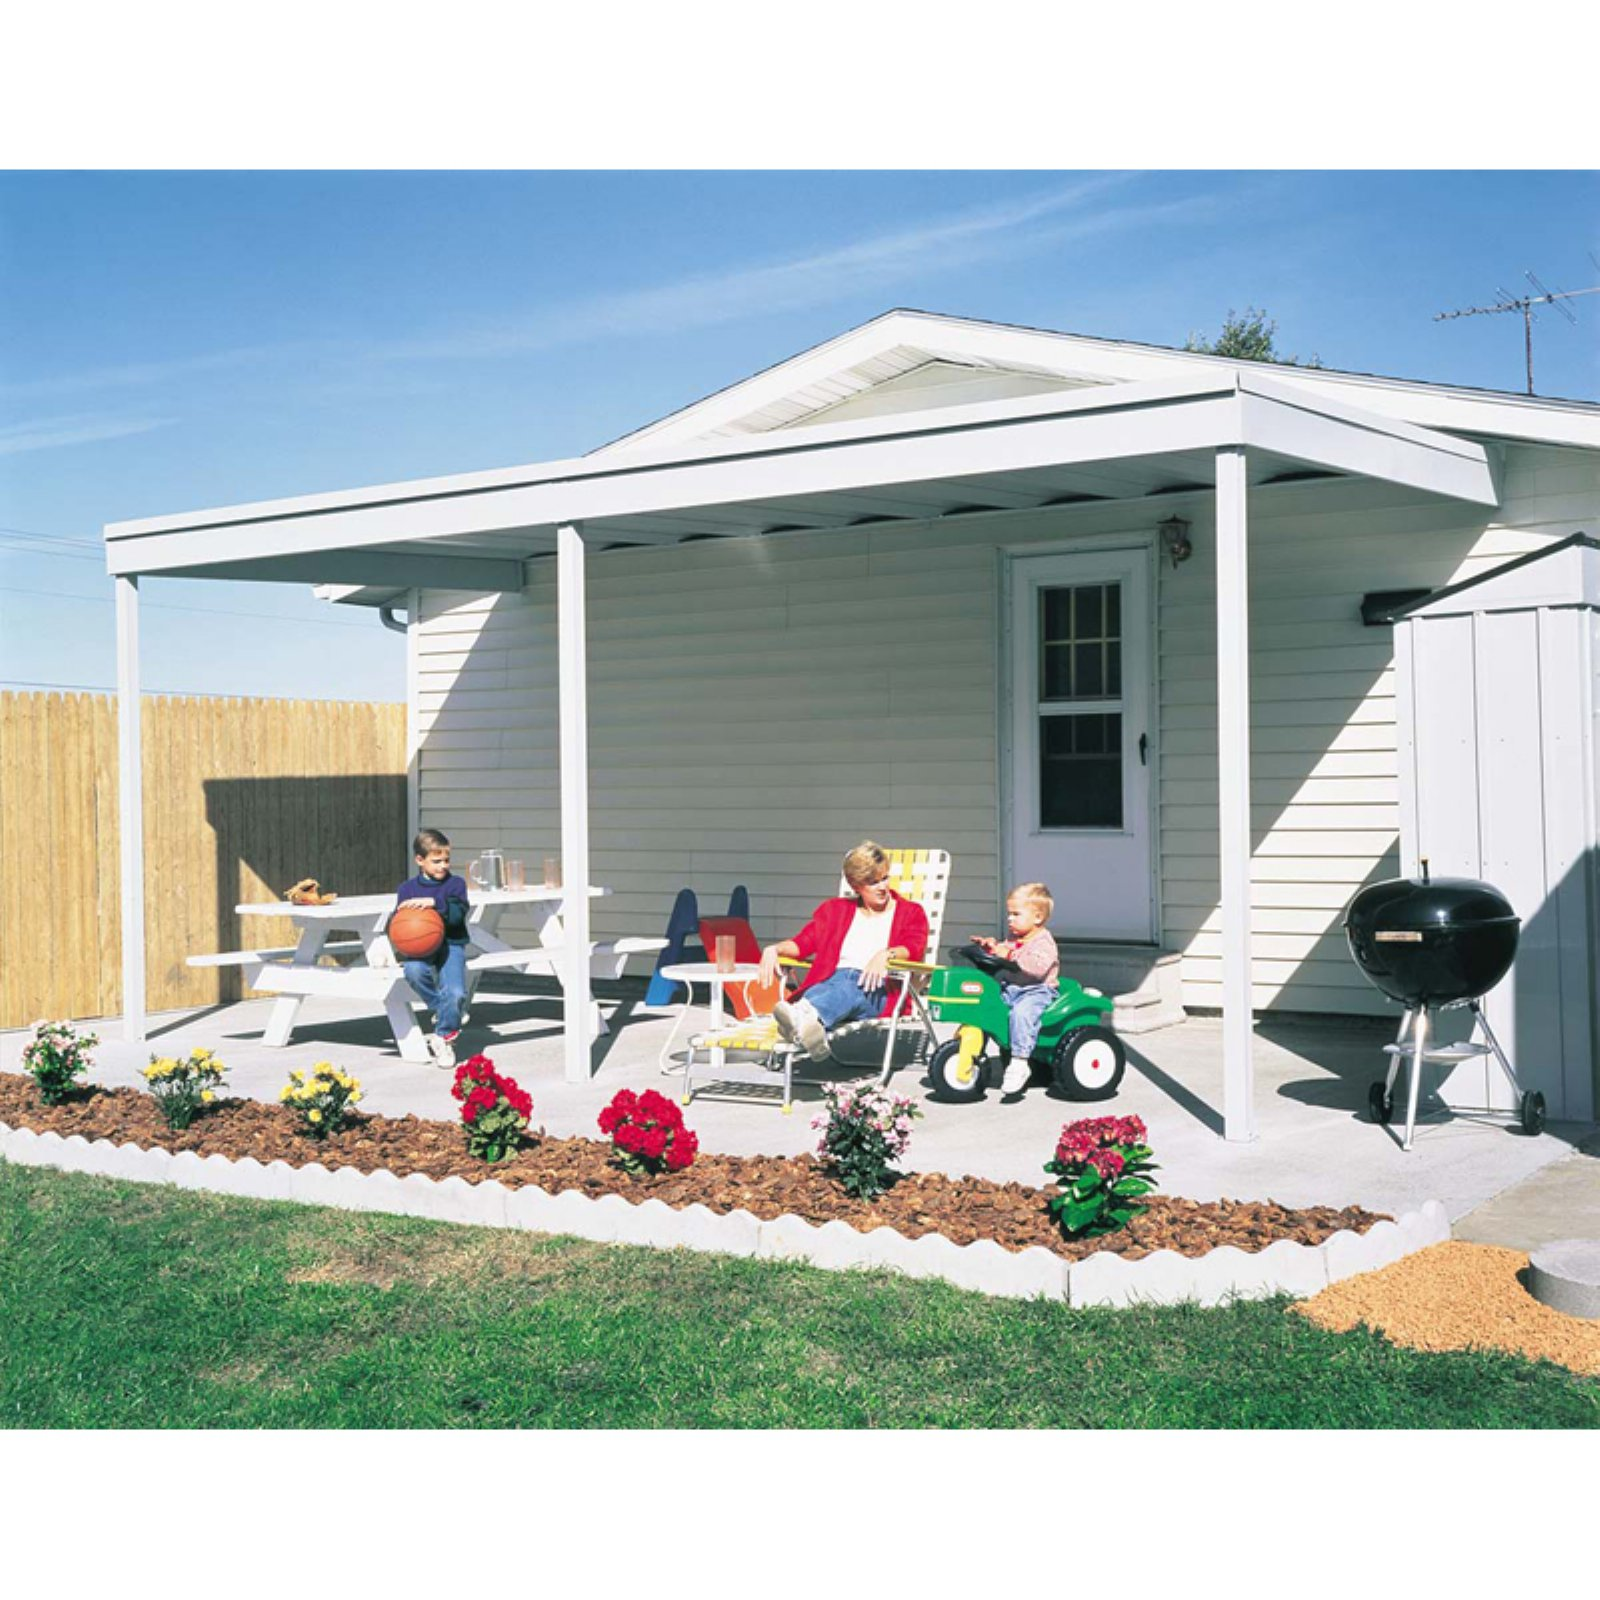 Arrow Shed Storage Patio Cover 10 X 20 Ft.